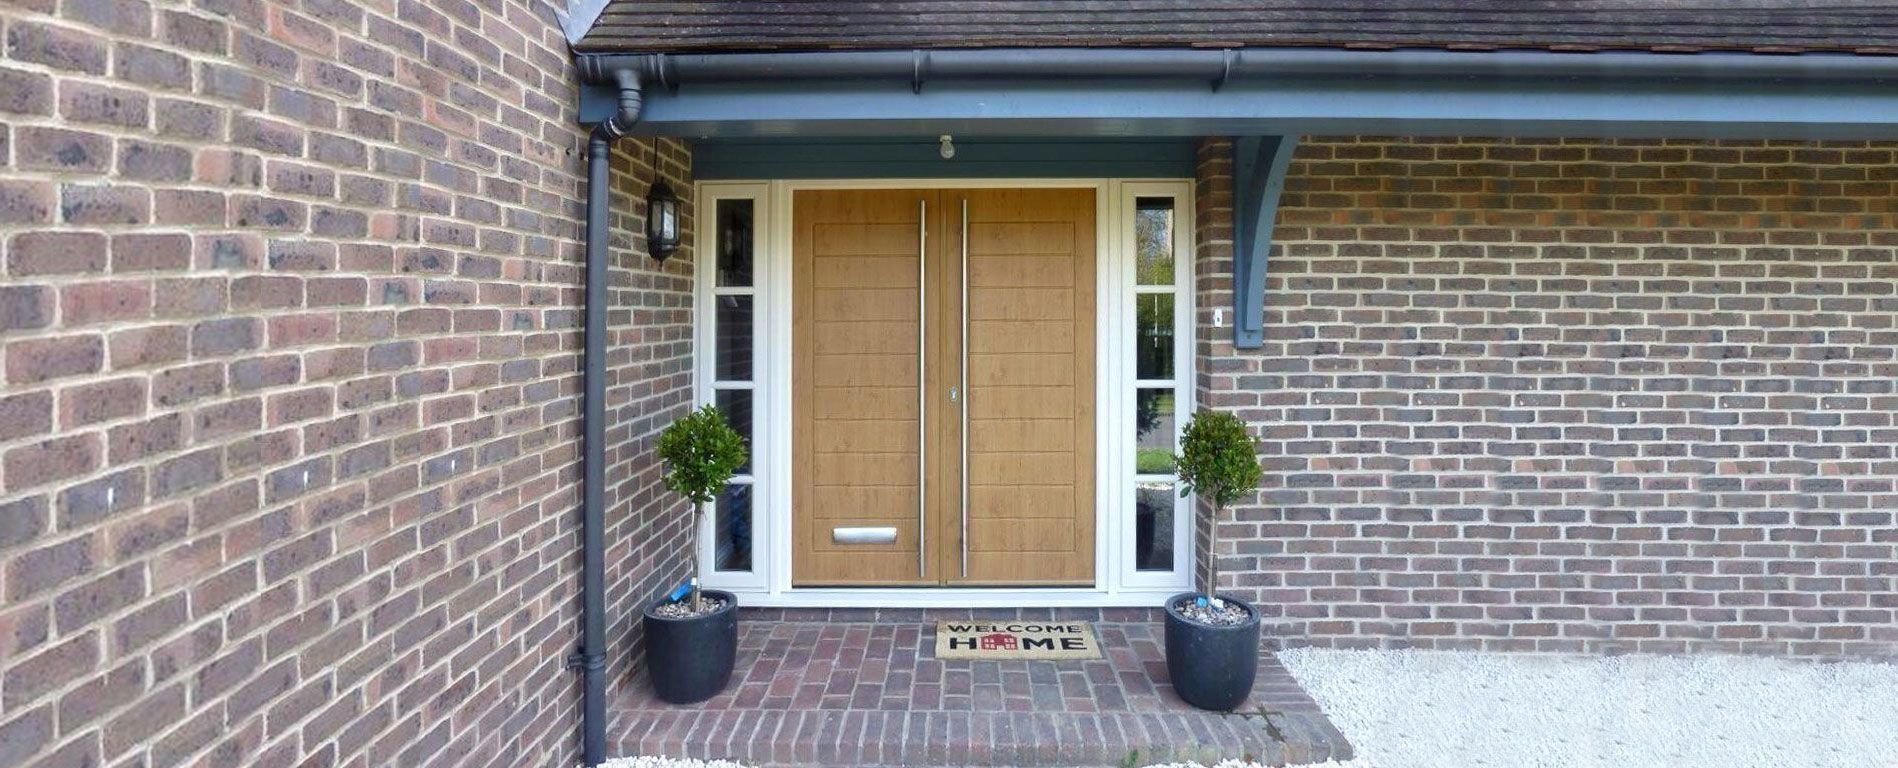 Residential house with modern style Solidor composite double doors